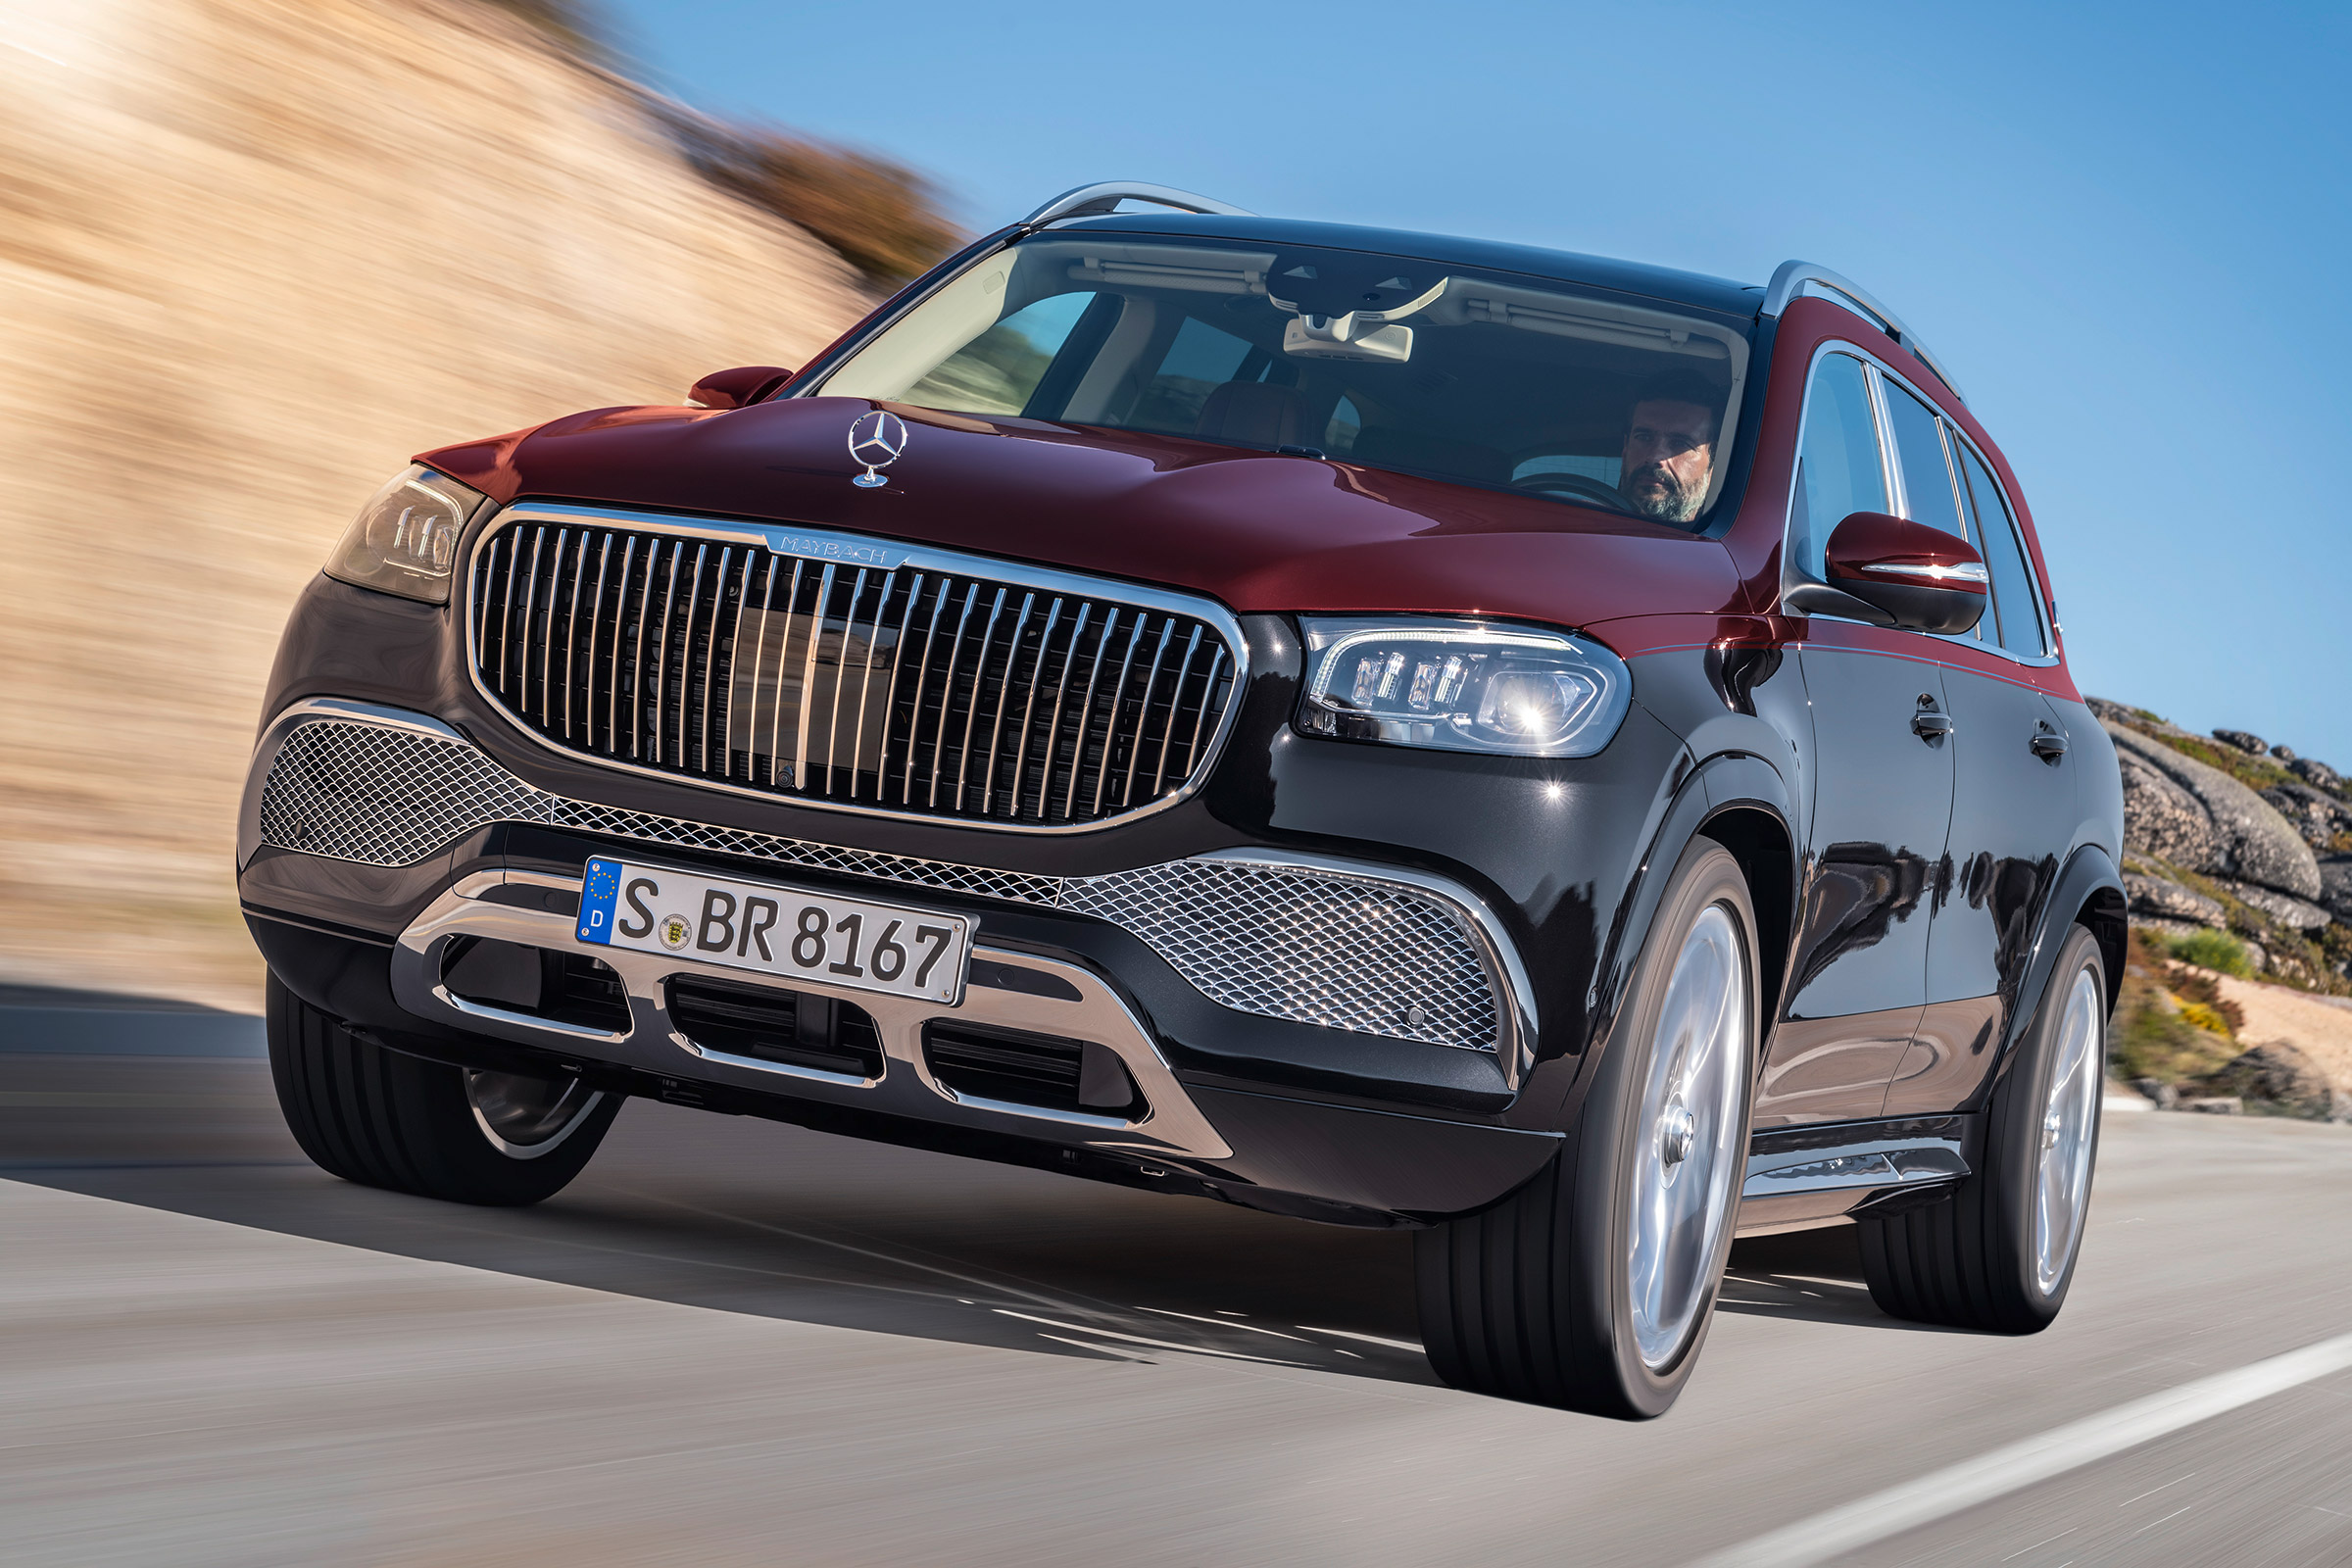 New 2020 Mercedes Maybach Gls Luxury Suv Launched Auto Express